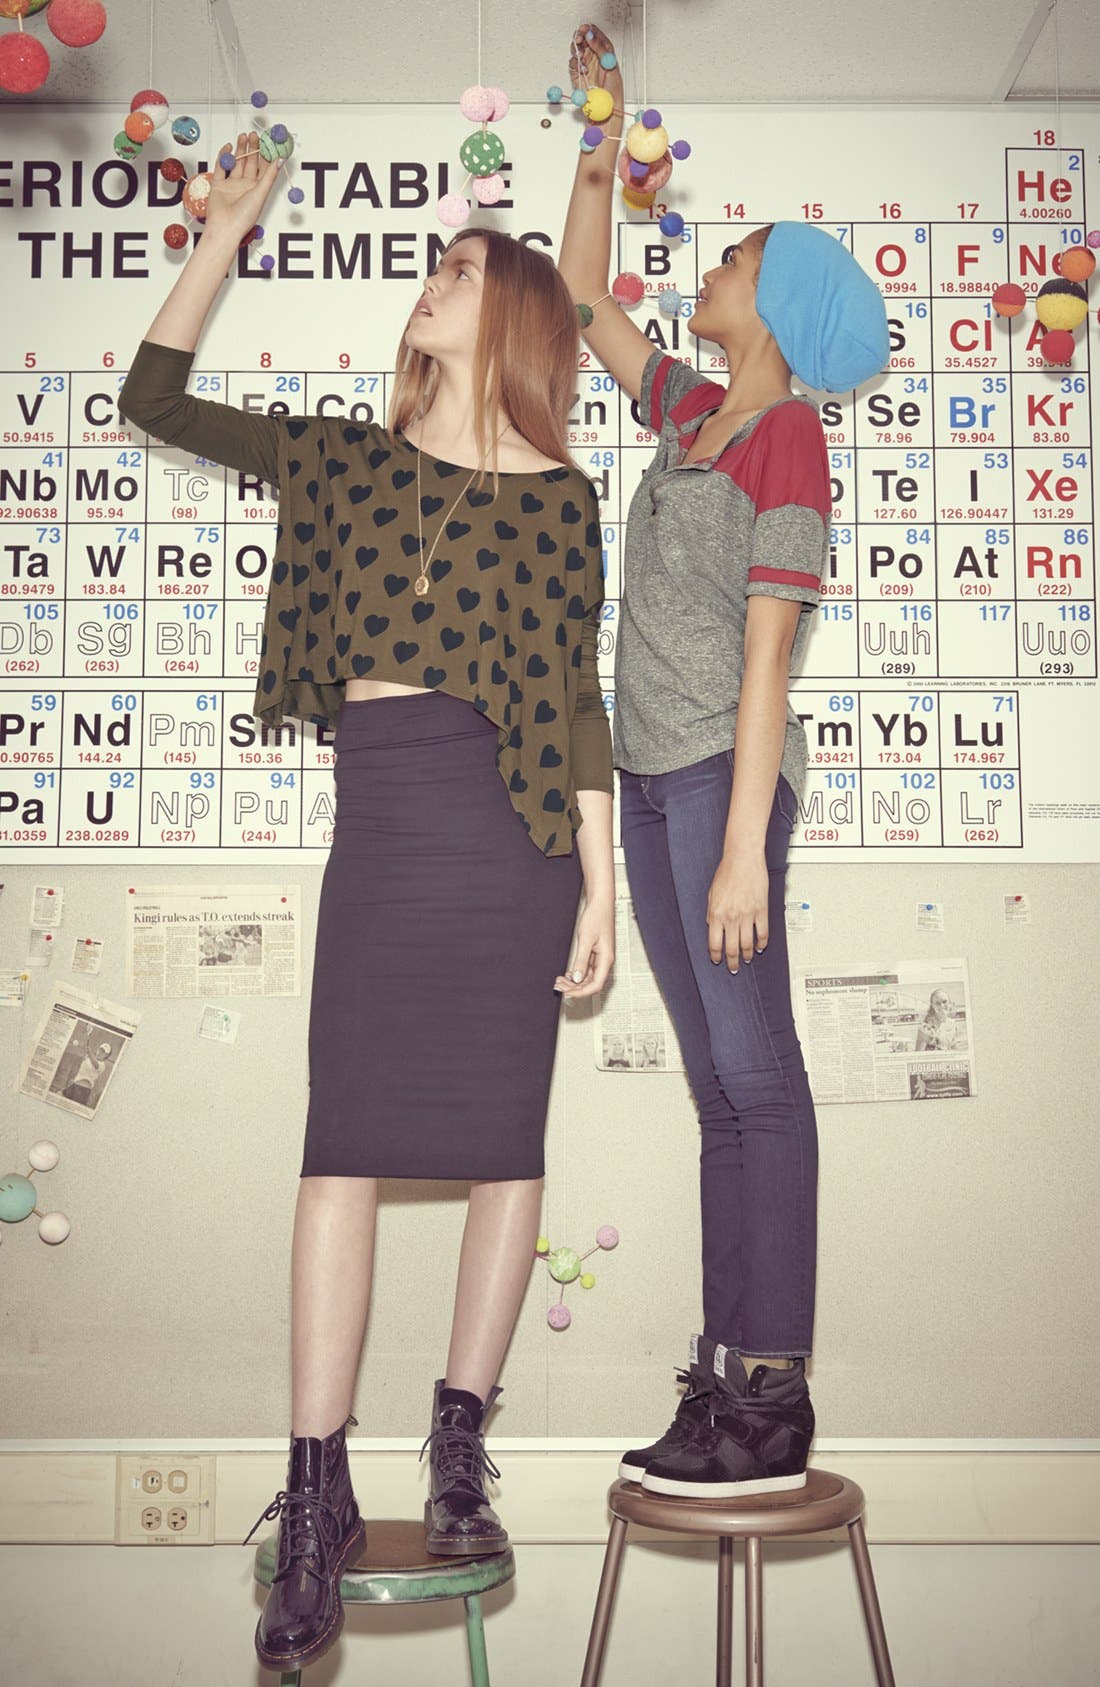 Main Image - C+B Tee & Frenchi® Skirt; Project Social T Tee & Articles of Society Jeans